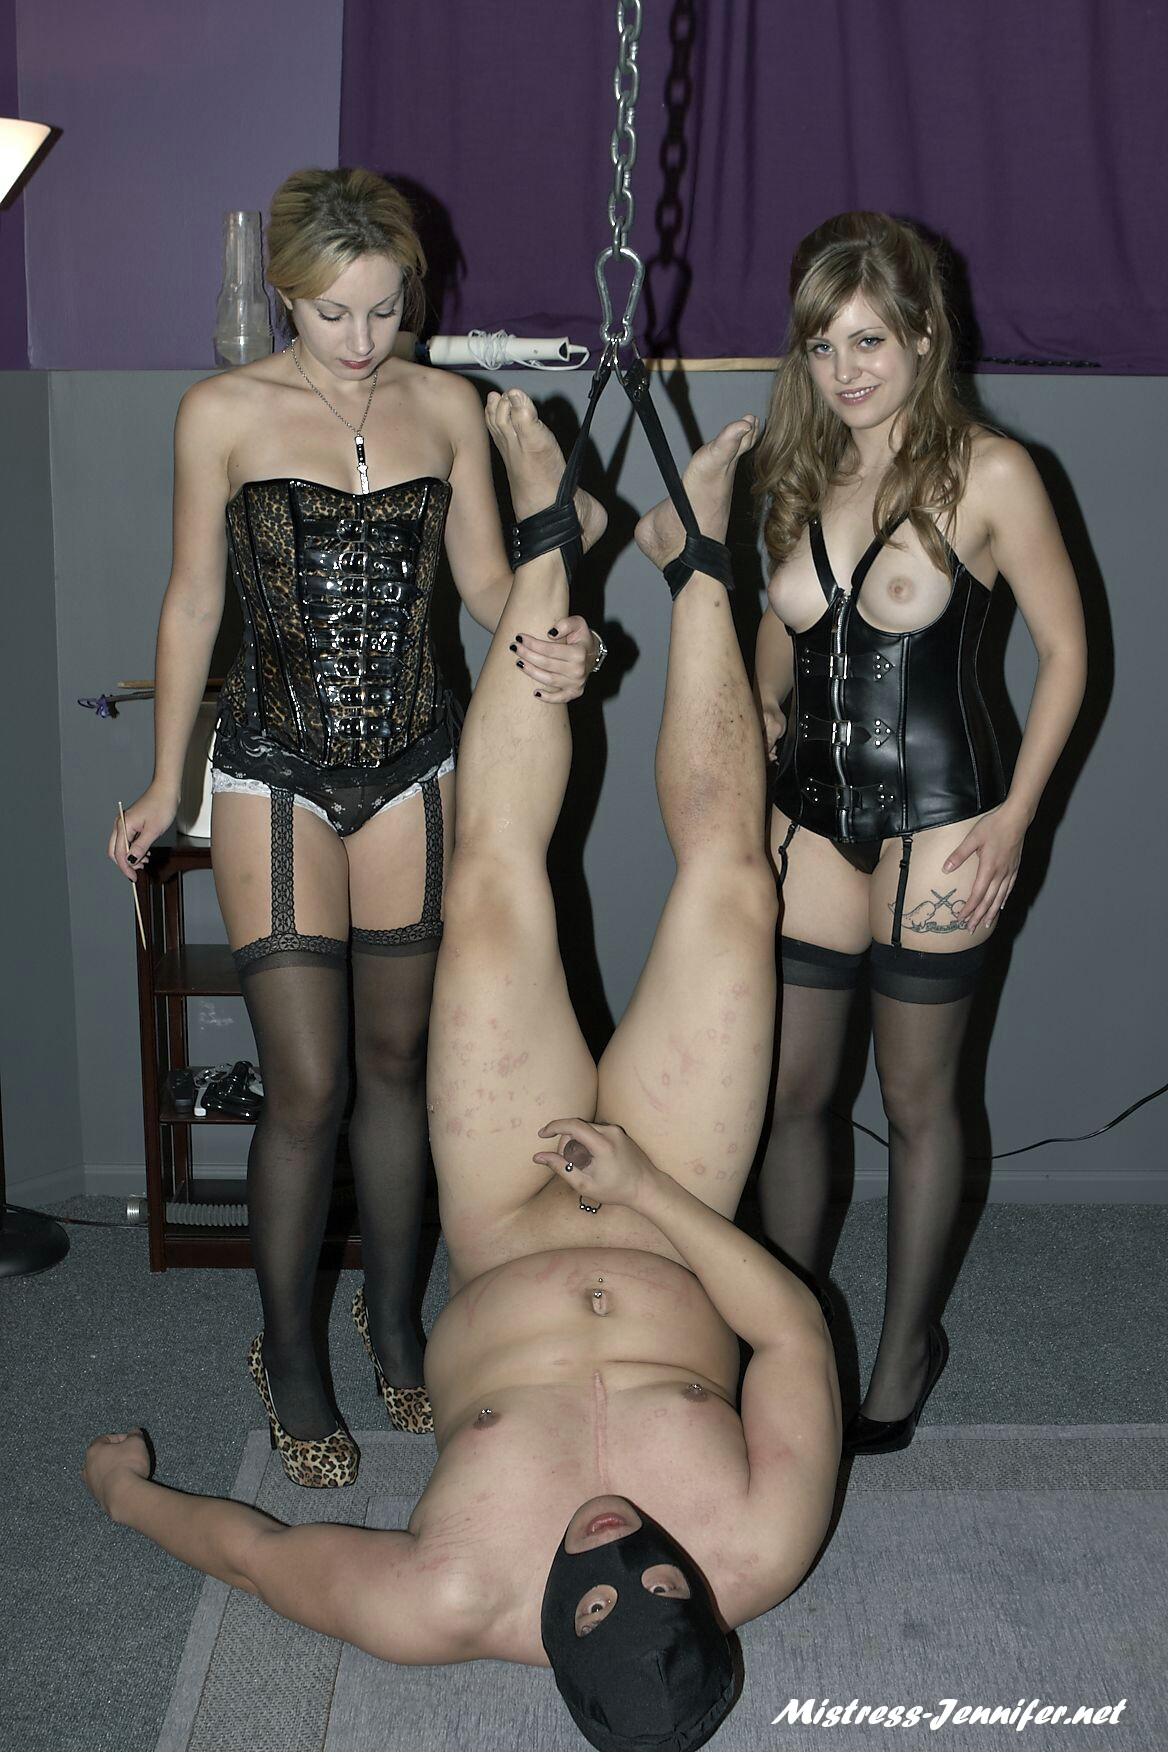 share your anal squirt bdsm situation familiar me. possible